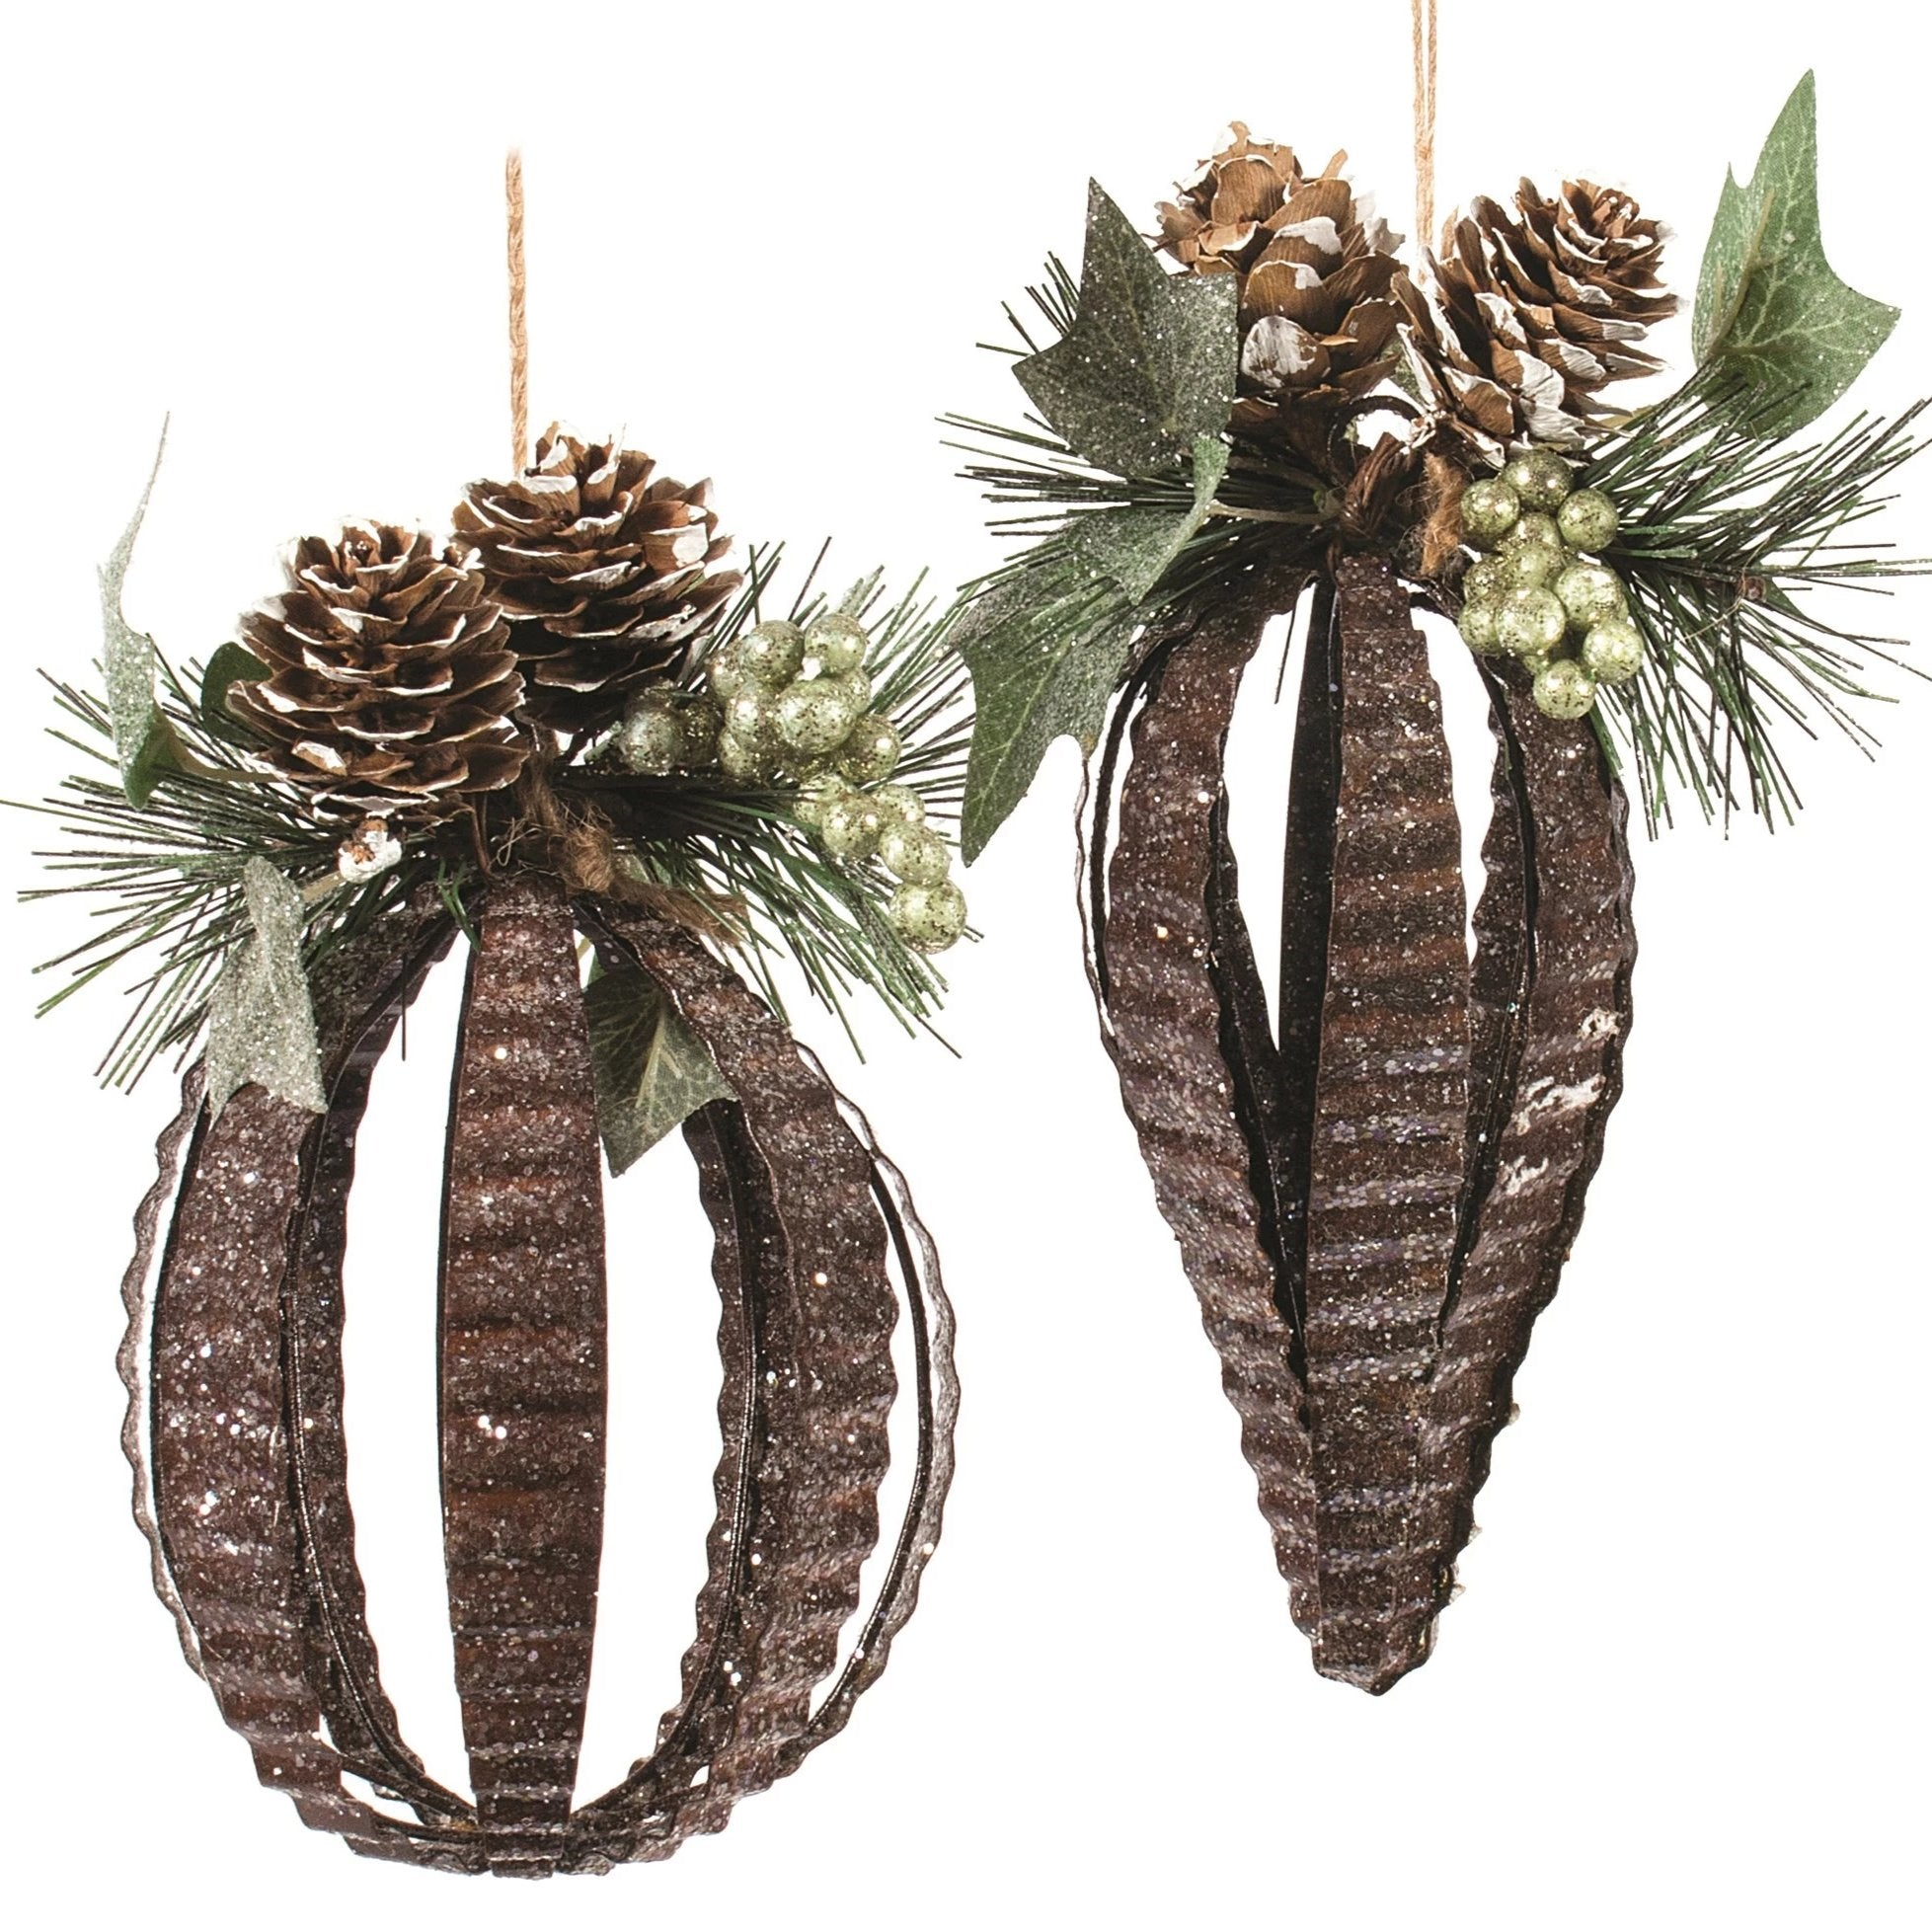 Tin Ornaments with Pinecones | putti Christmas Decorations